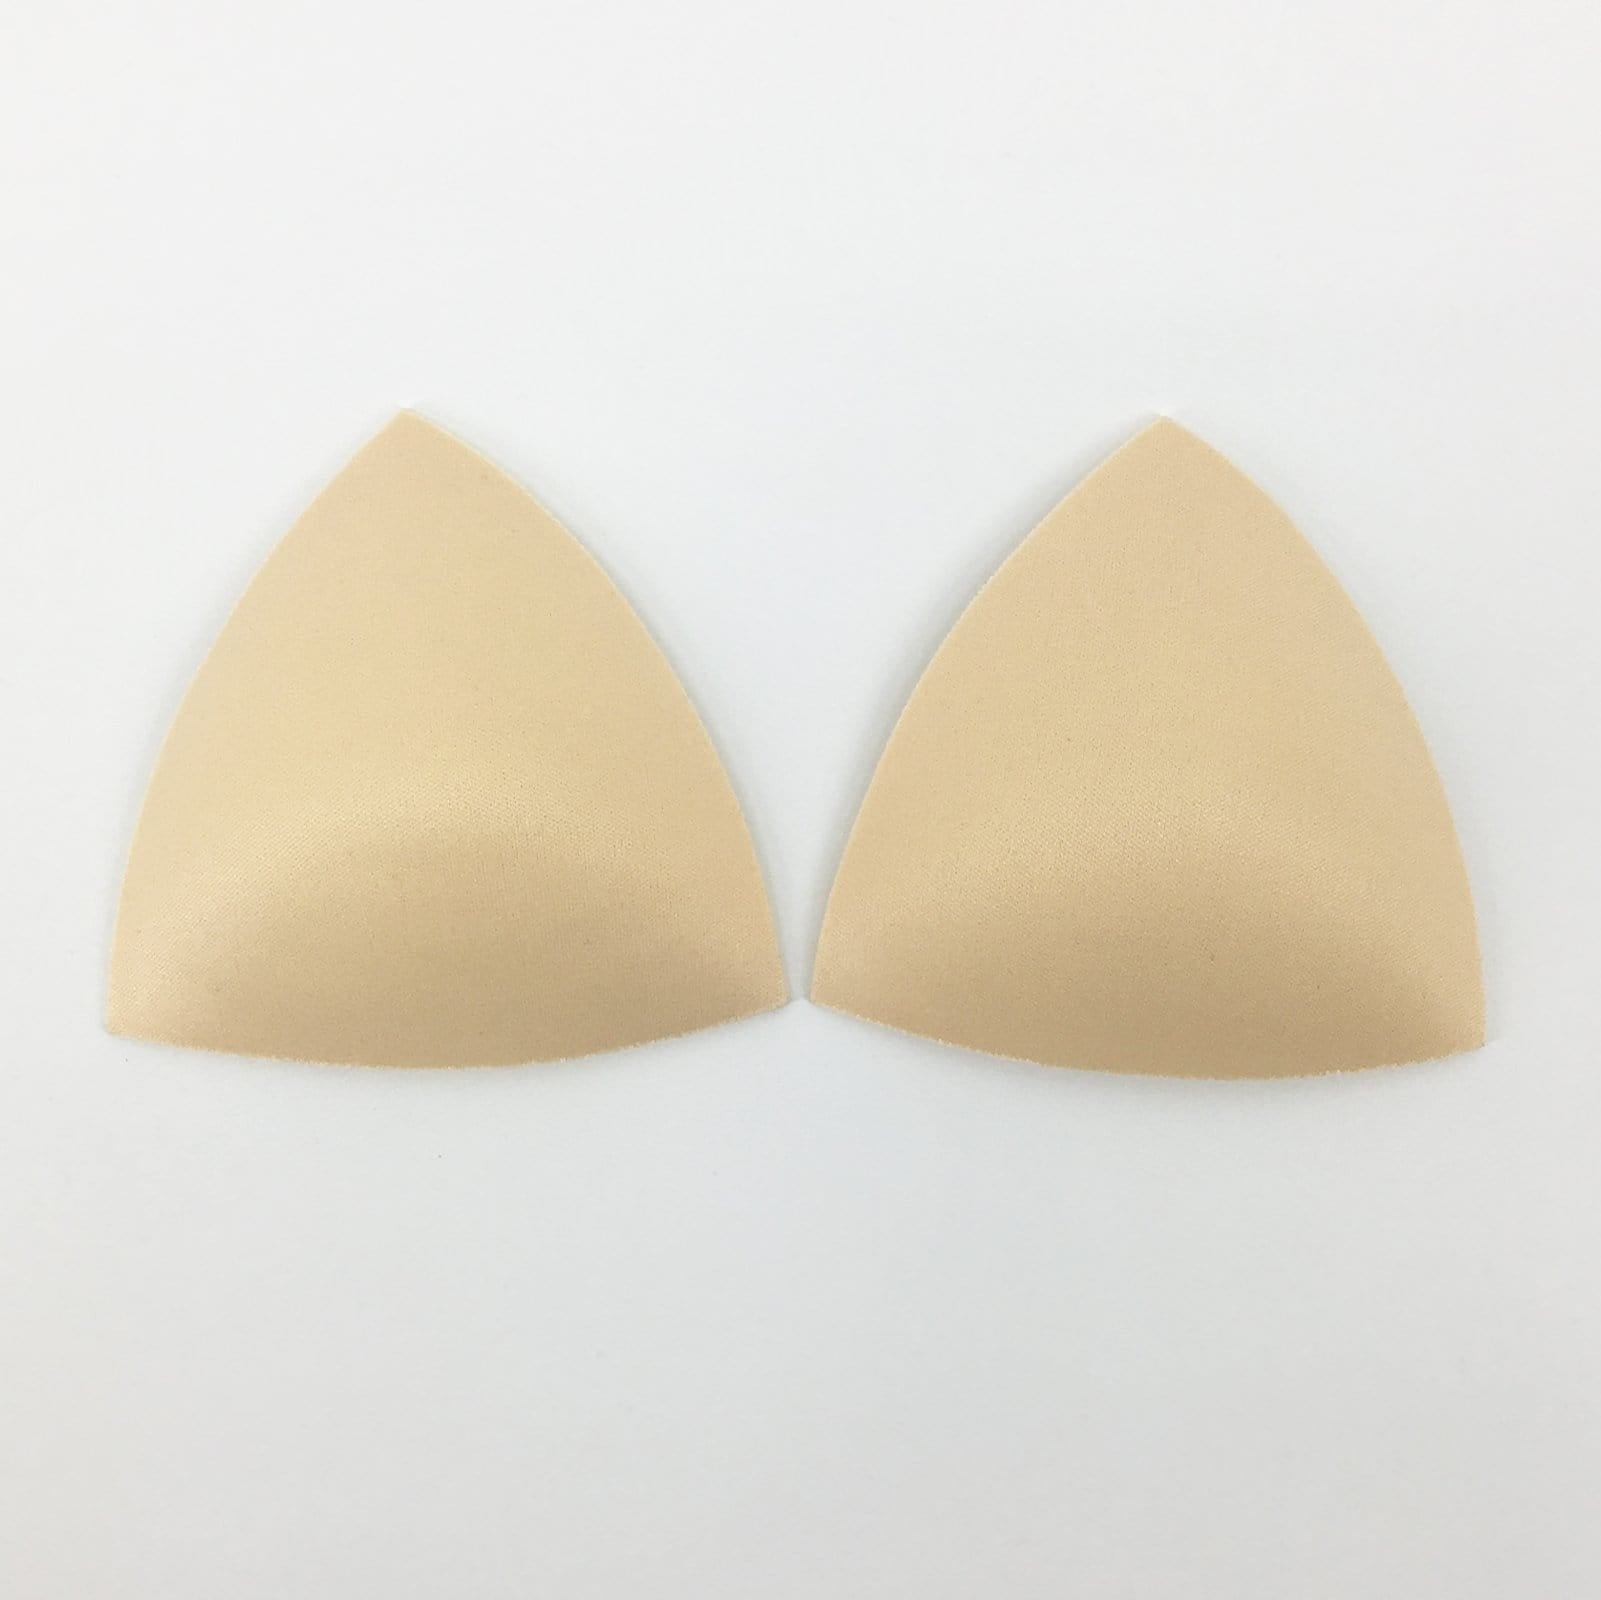 FUNFIT Triangle Push-Up Bra Padding Inserts In Nude